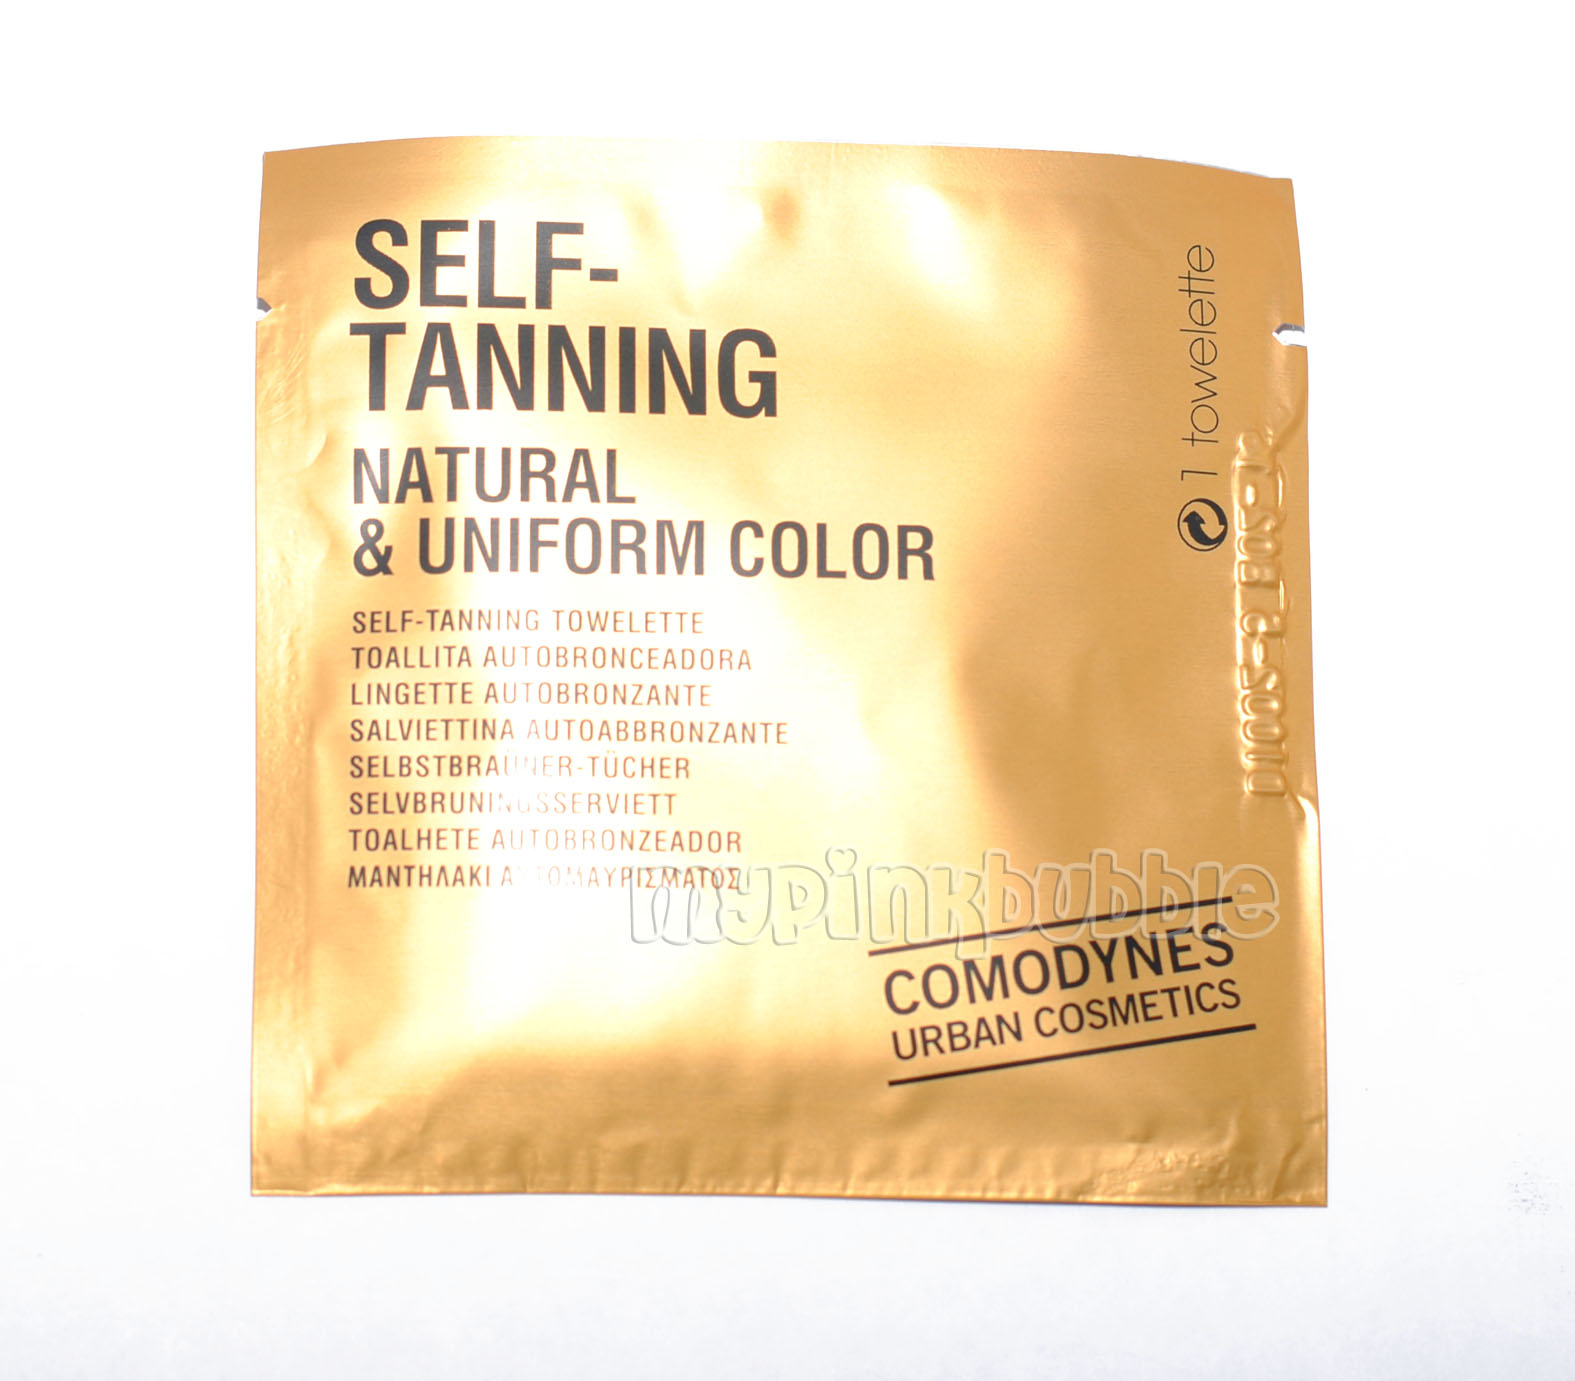 Toallita Self-Tanning Natural & Uniform Color